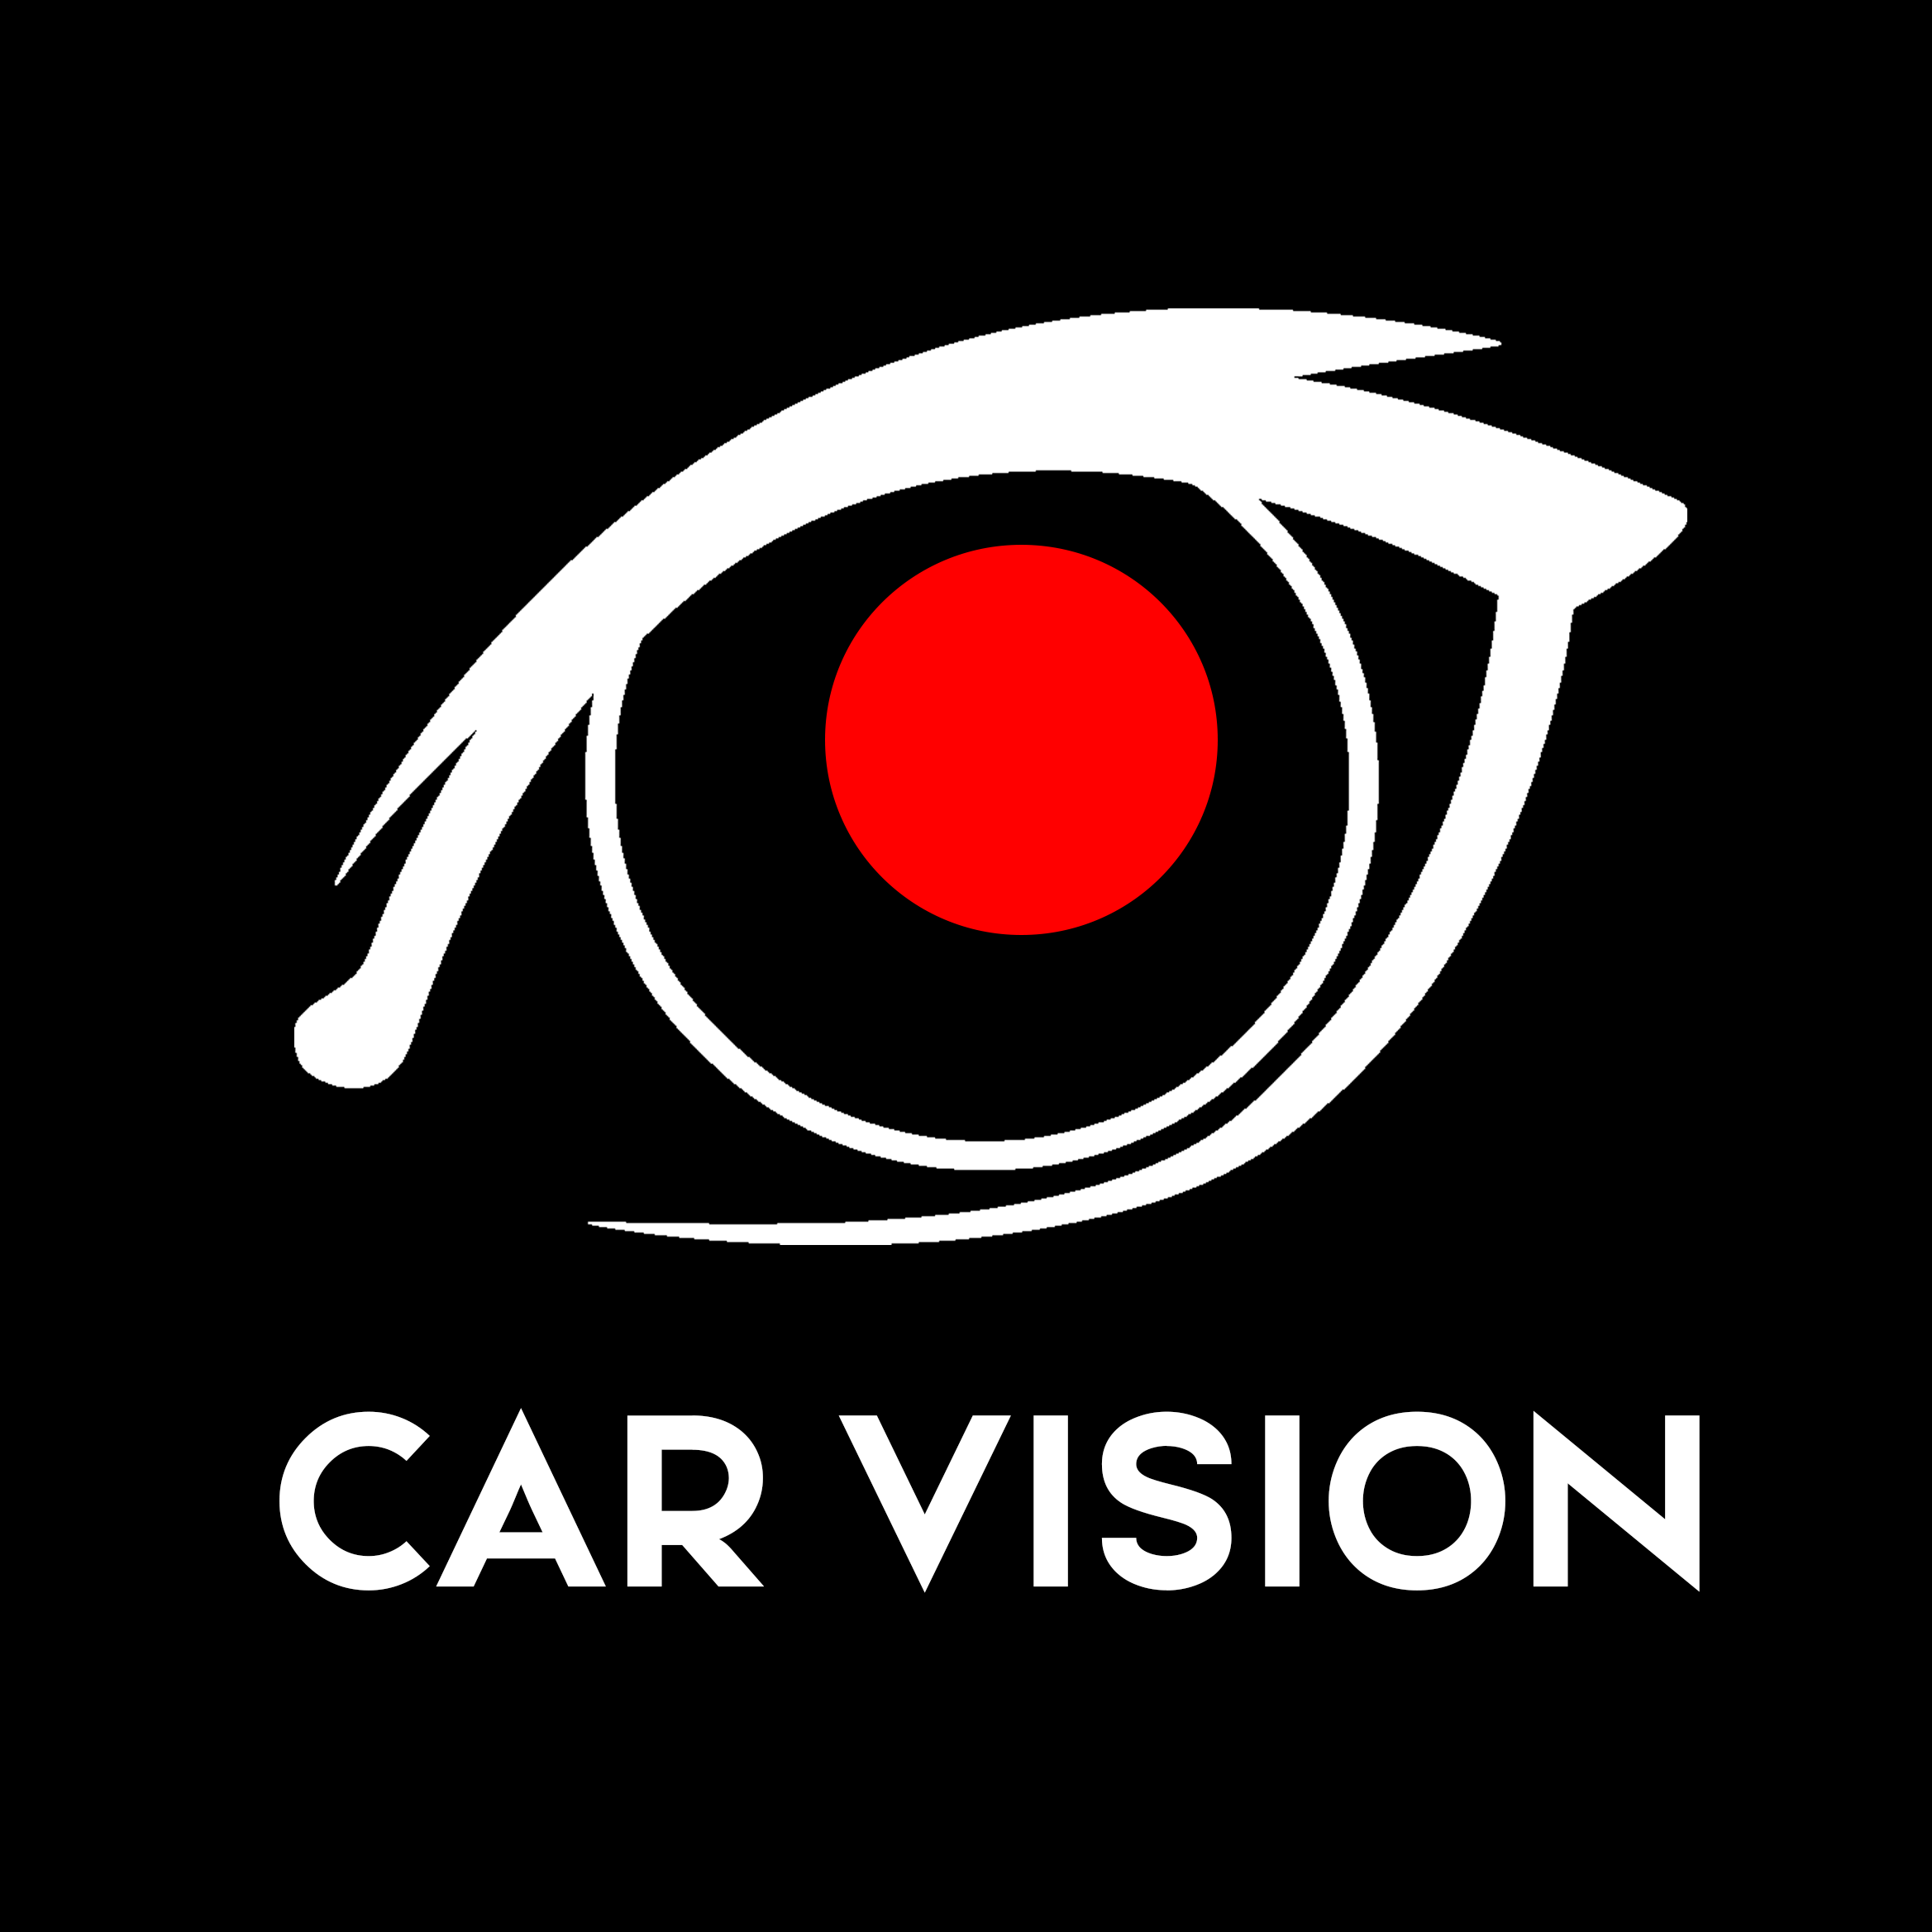 carvision.dz